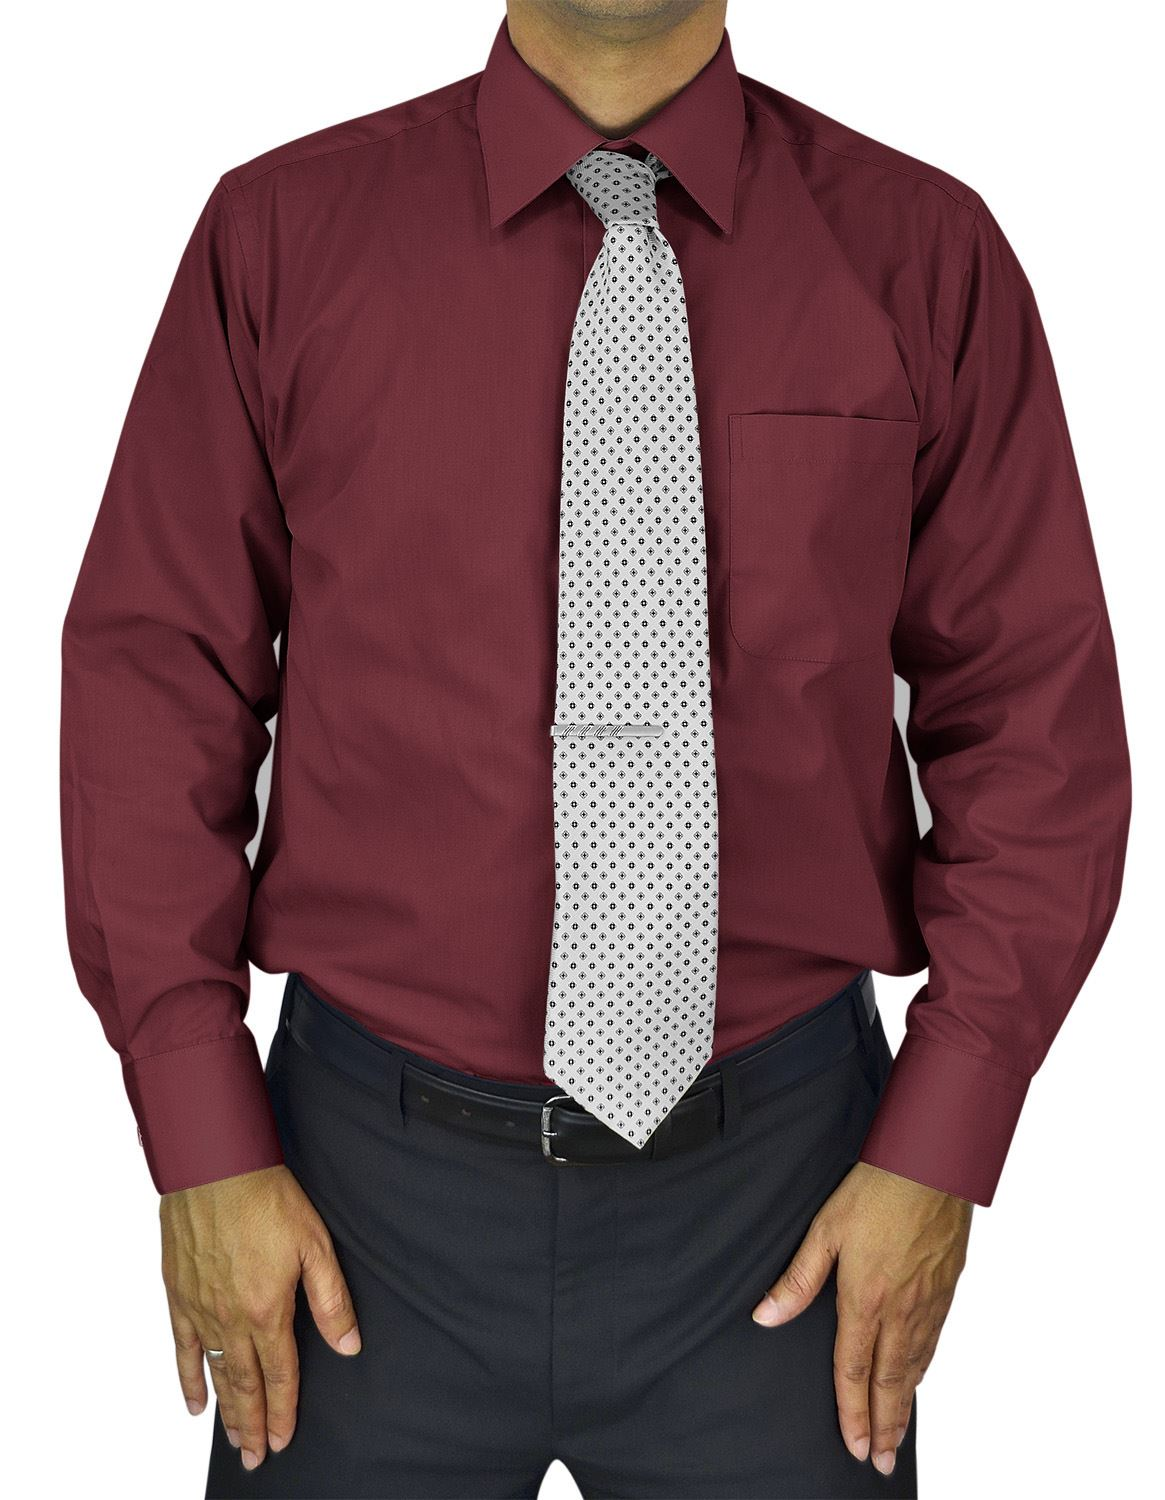 Mens Dress Shirt Slim and Regular Fit Office Casual French Cuff Moda Di Raza - Burgundy 14.5